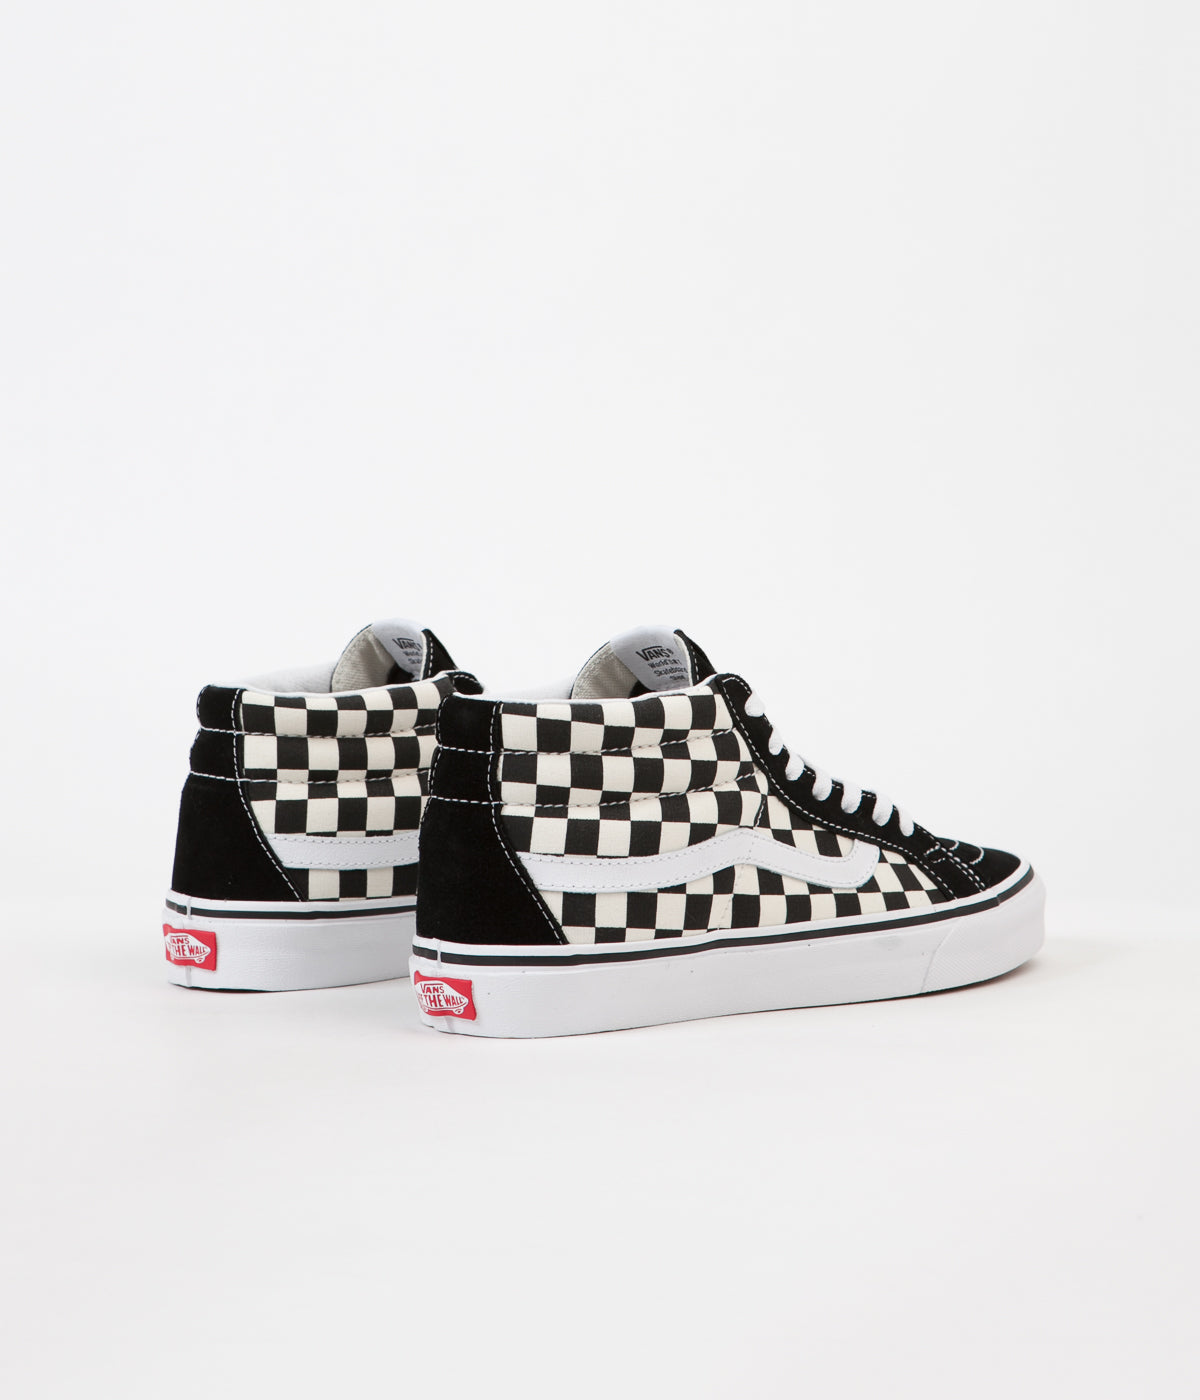 68d65ec511 ... Vans Sk8-Mid Reissue Shoes - Checkerboard   True White ...